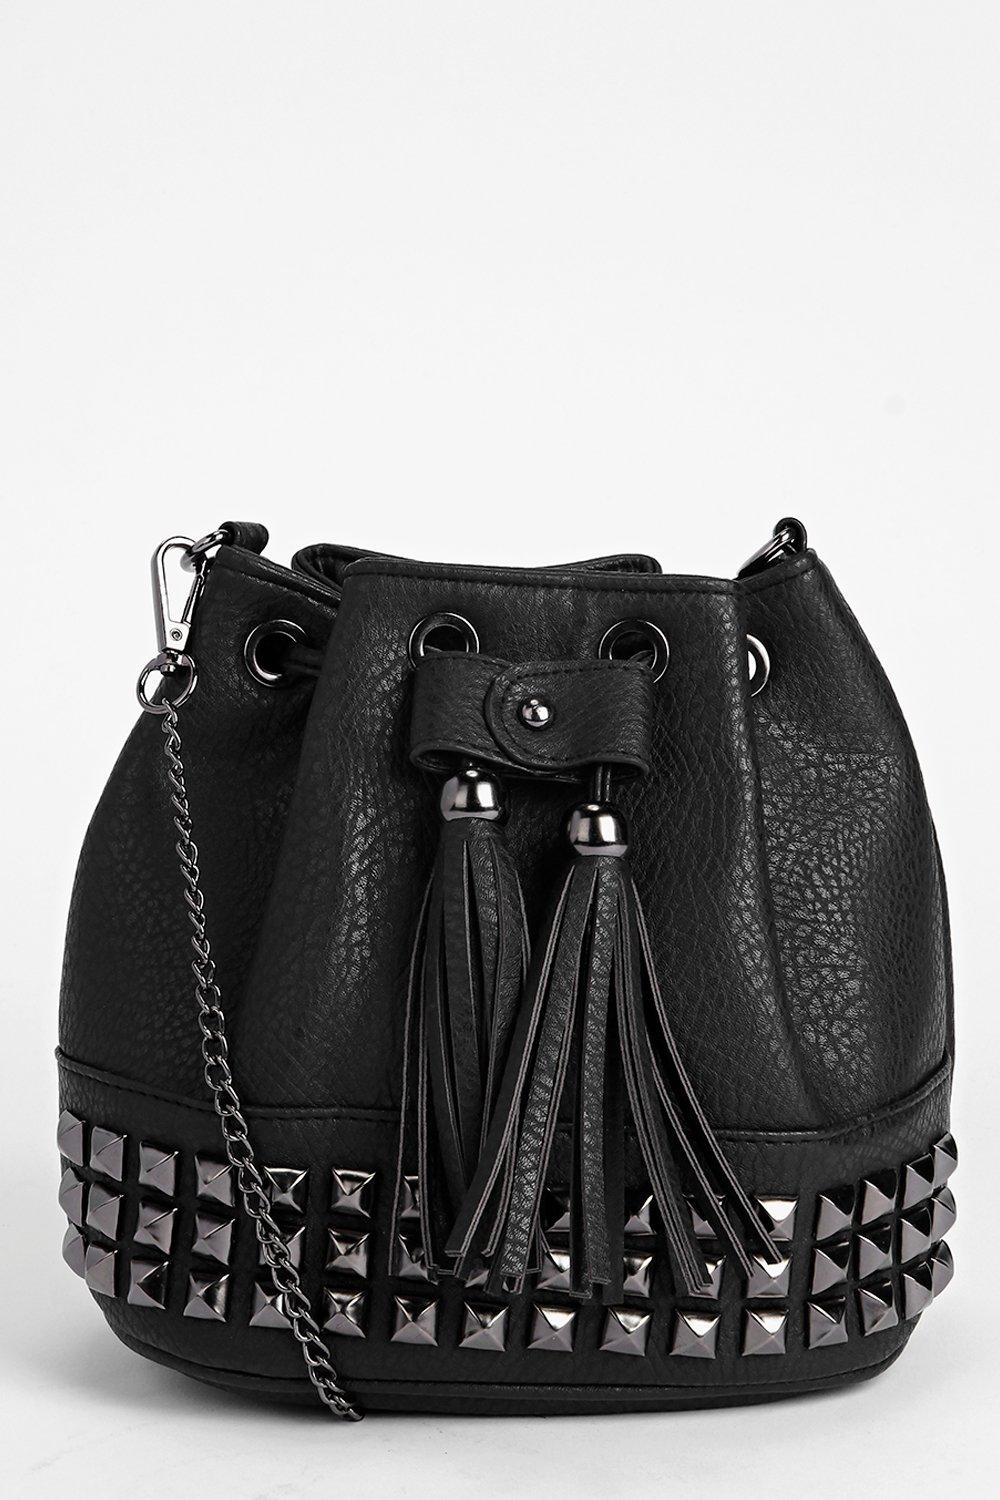 Studded Tassel Duffle Cross Body Bag - black - A b